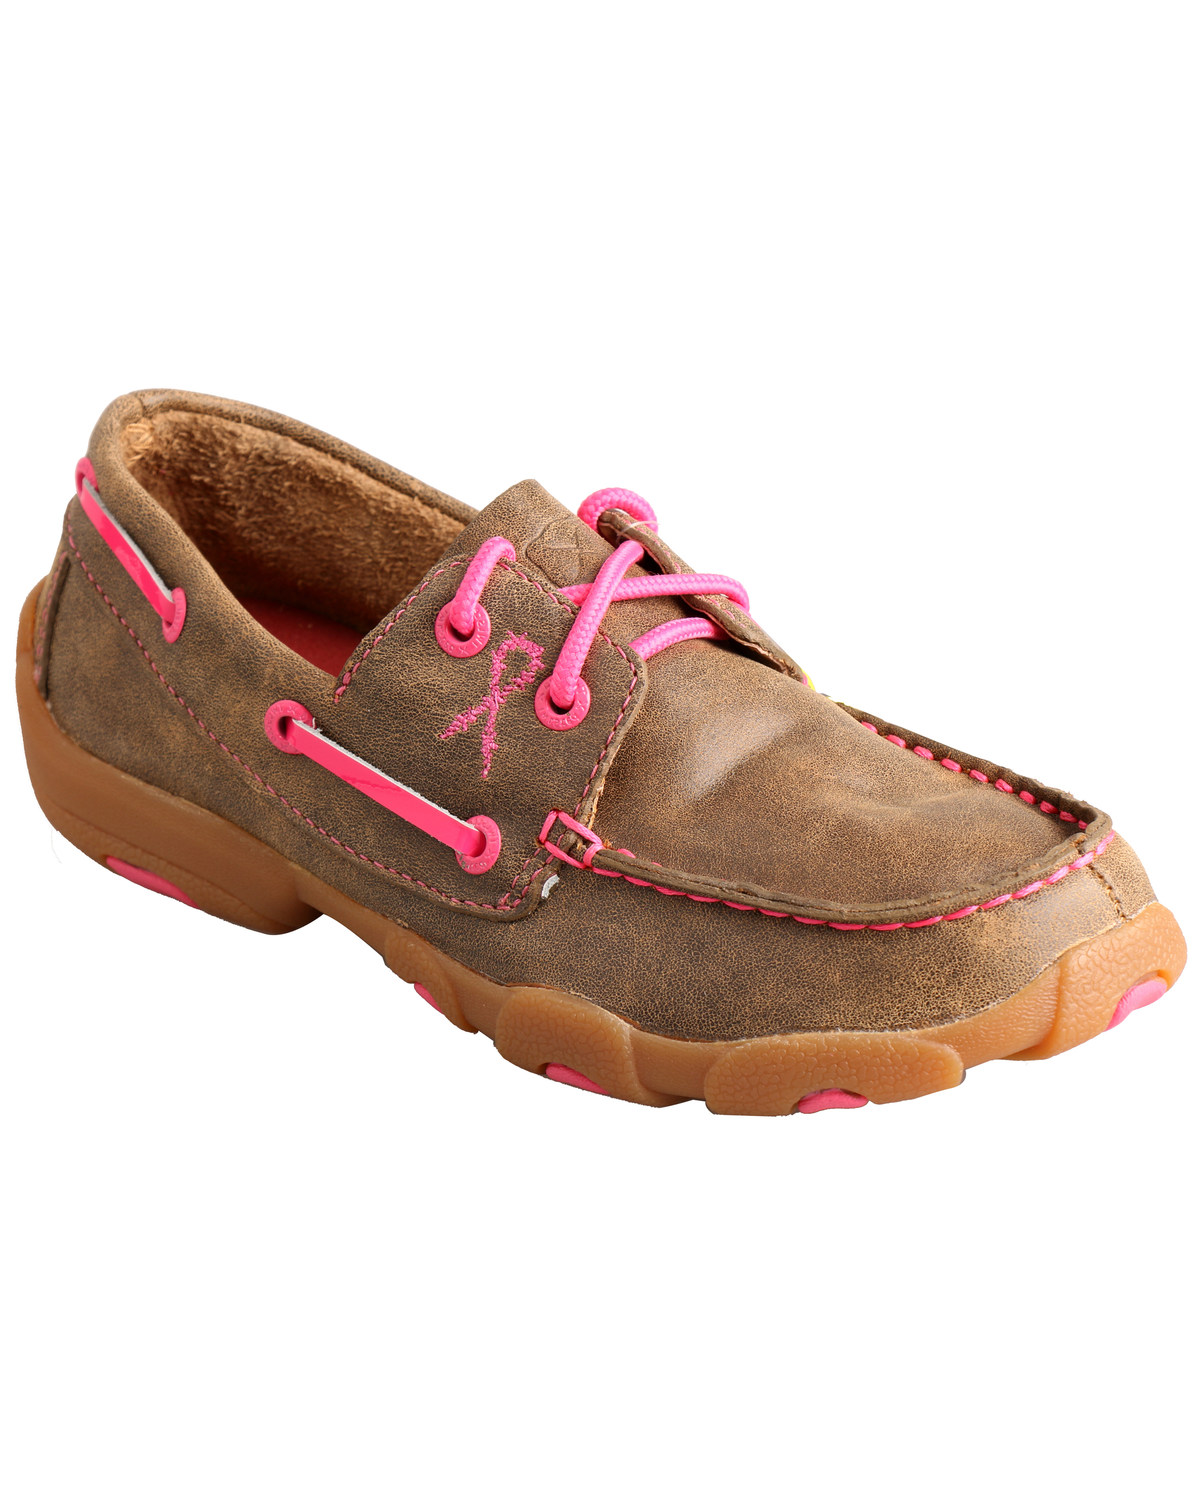 066e76f0ec10 Zoomed Image Twisted X Kids' Breast Cancer Awareness Driving Moccasins,  Bomber, hi-res